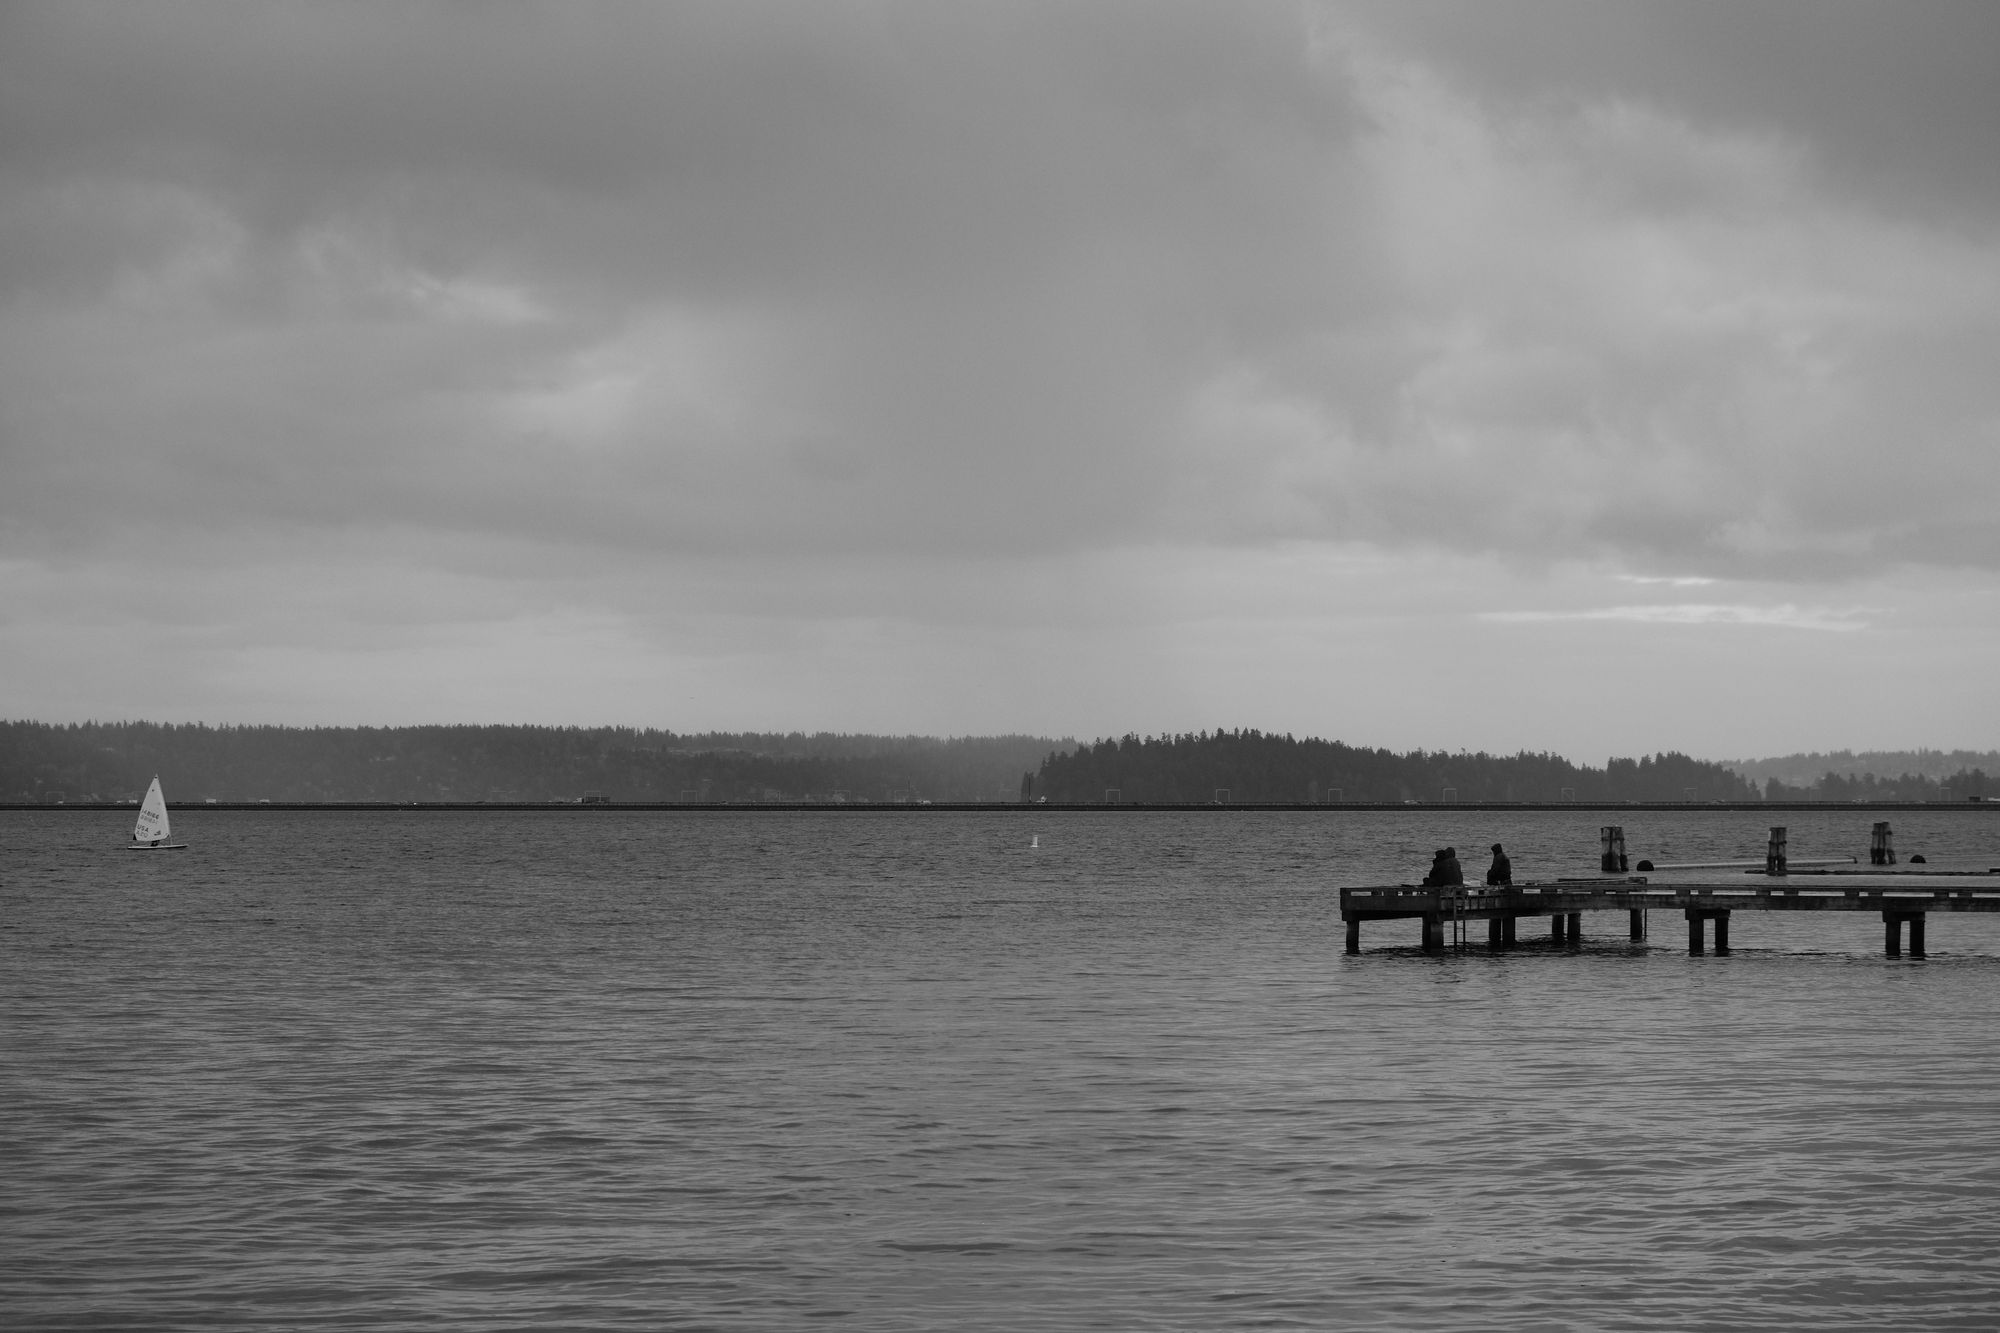 Waterfront Madrona Park Seattle December 2020